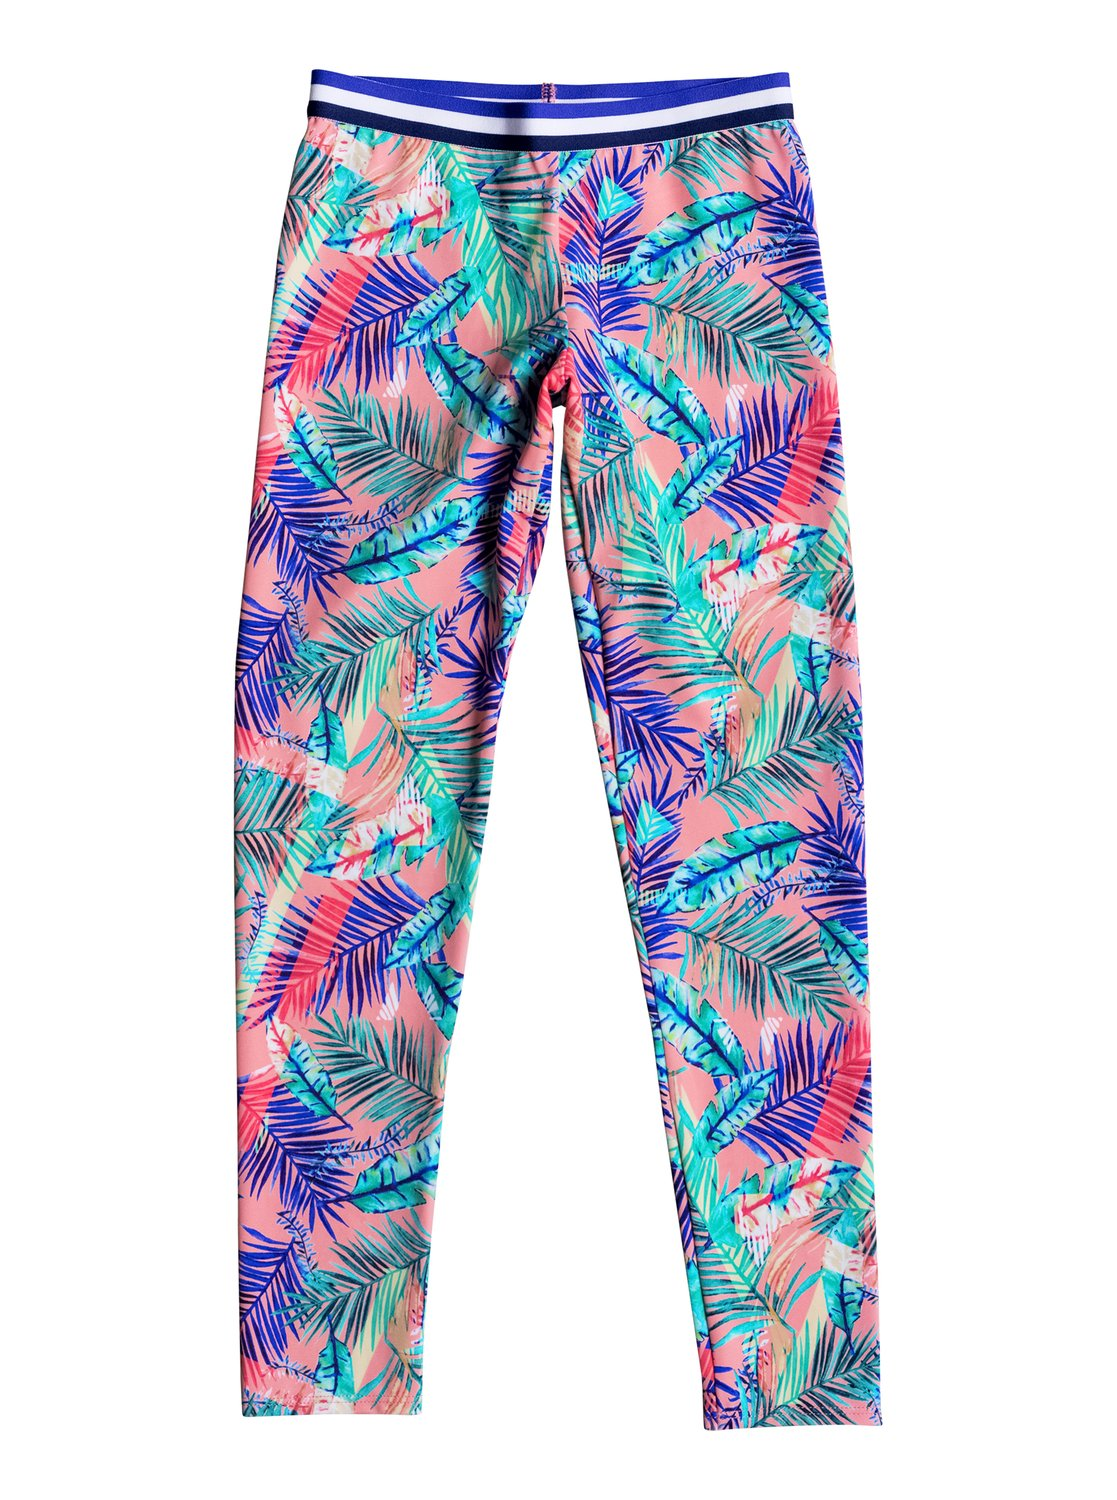 Take A Dream - Legging de fitness pour Fille - Roxy